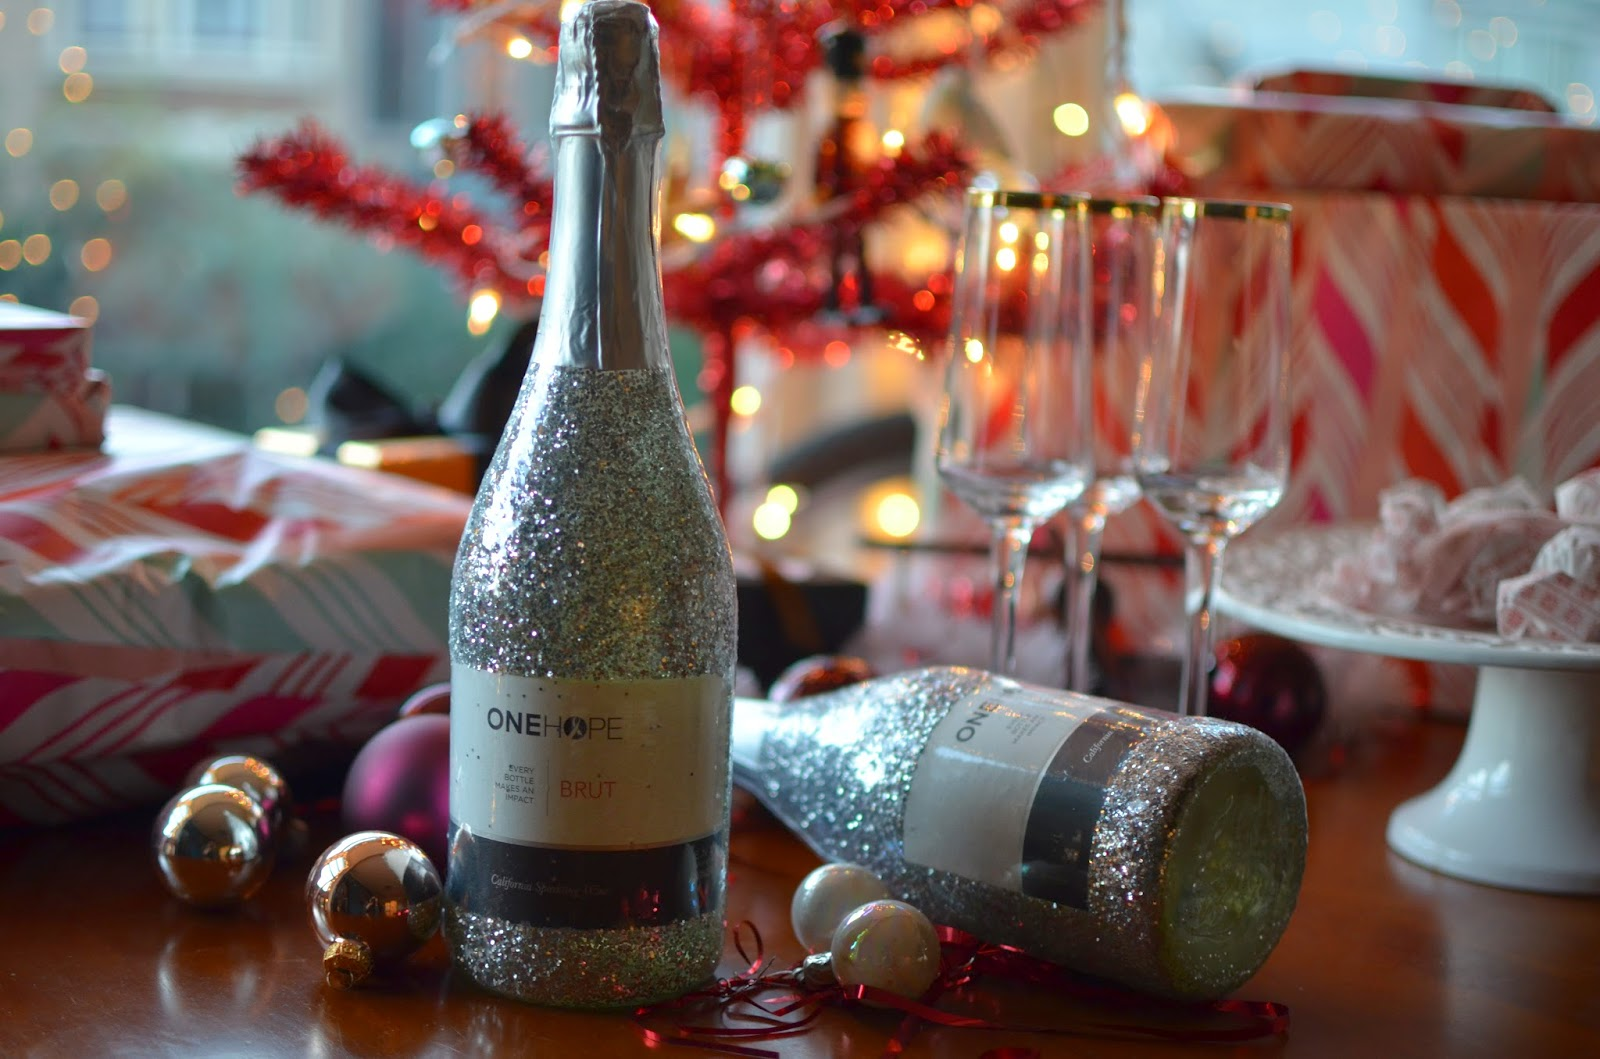 ONEHOPE, wine, Christmas time, holiday, wine, bubbly, libations